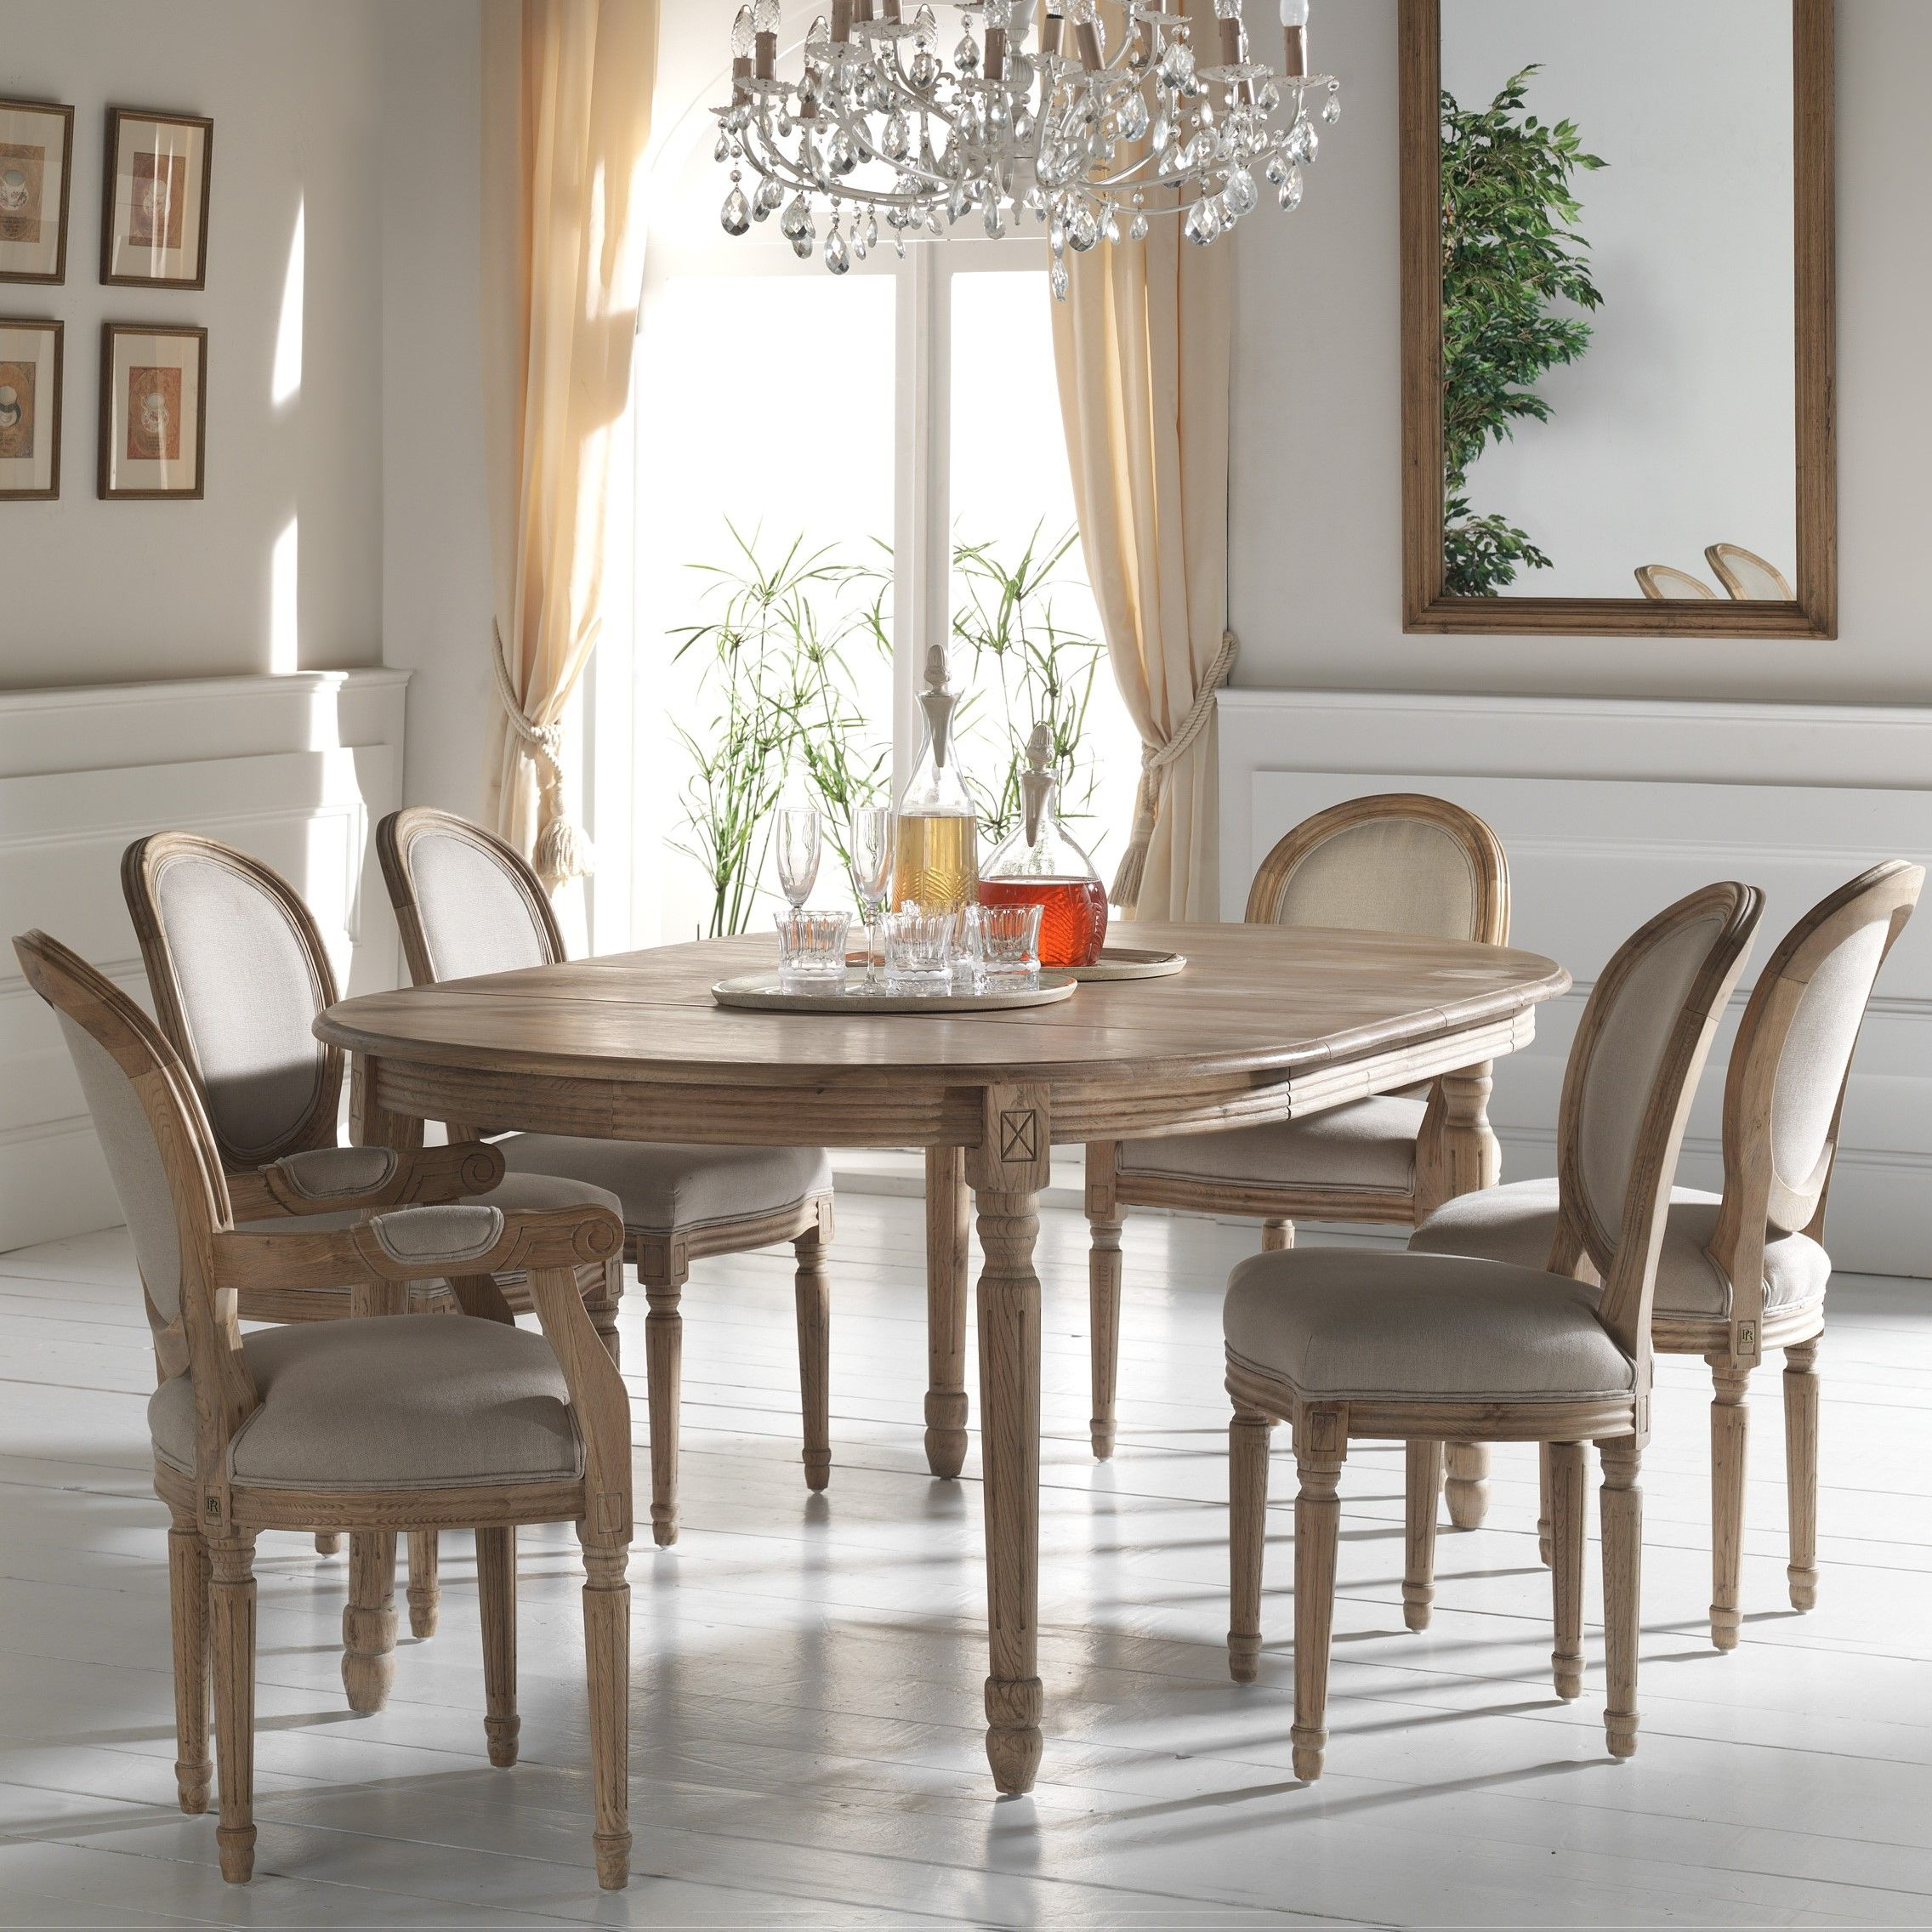 Table Ronde Extensible Bois Chene Clair 120 200 Medicis En 2020 Table Salle A Manger Table A Manger Ronde Et Salle A Manger Table Ovale